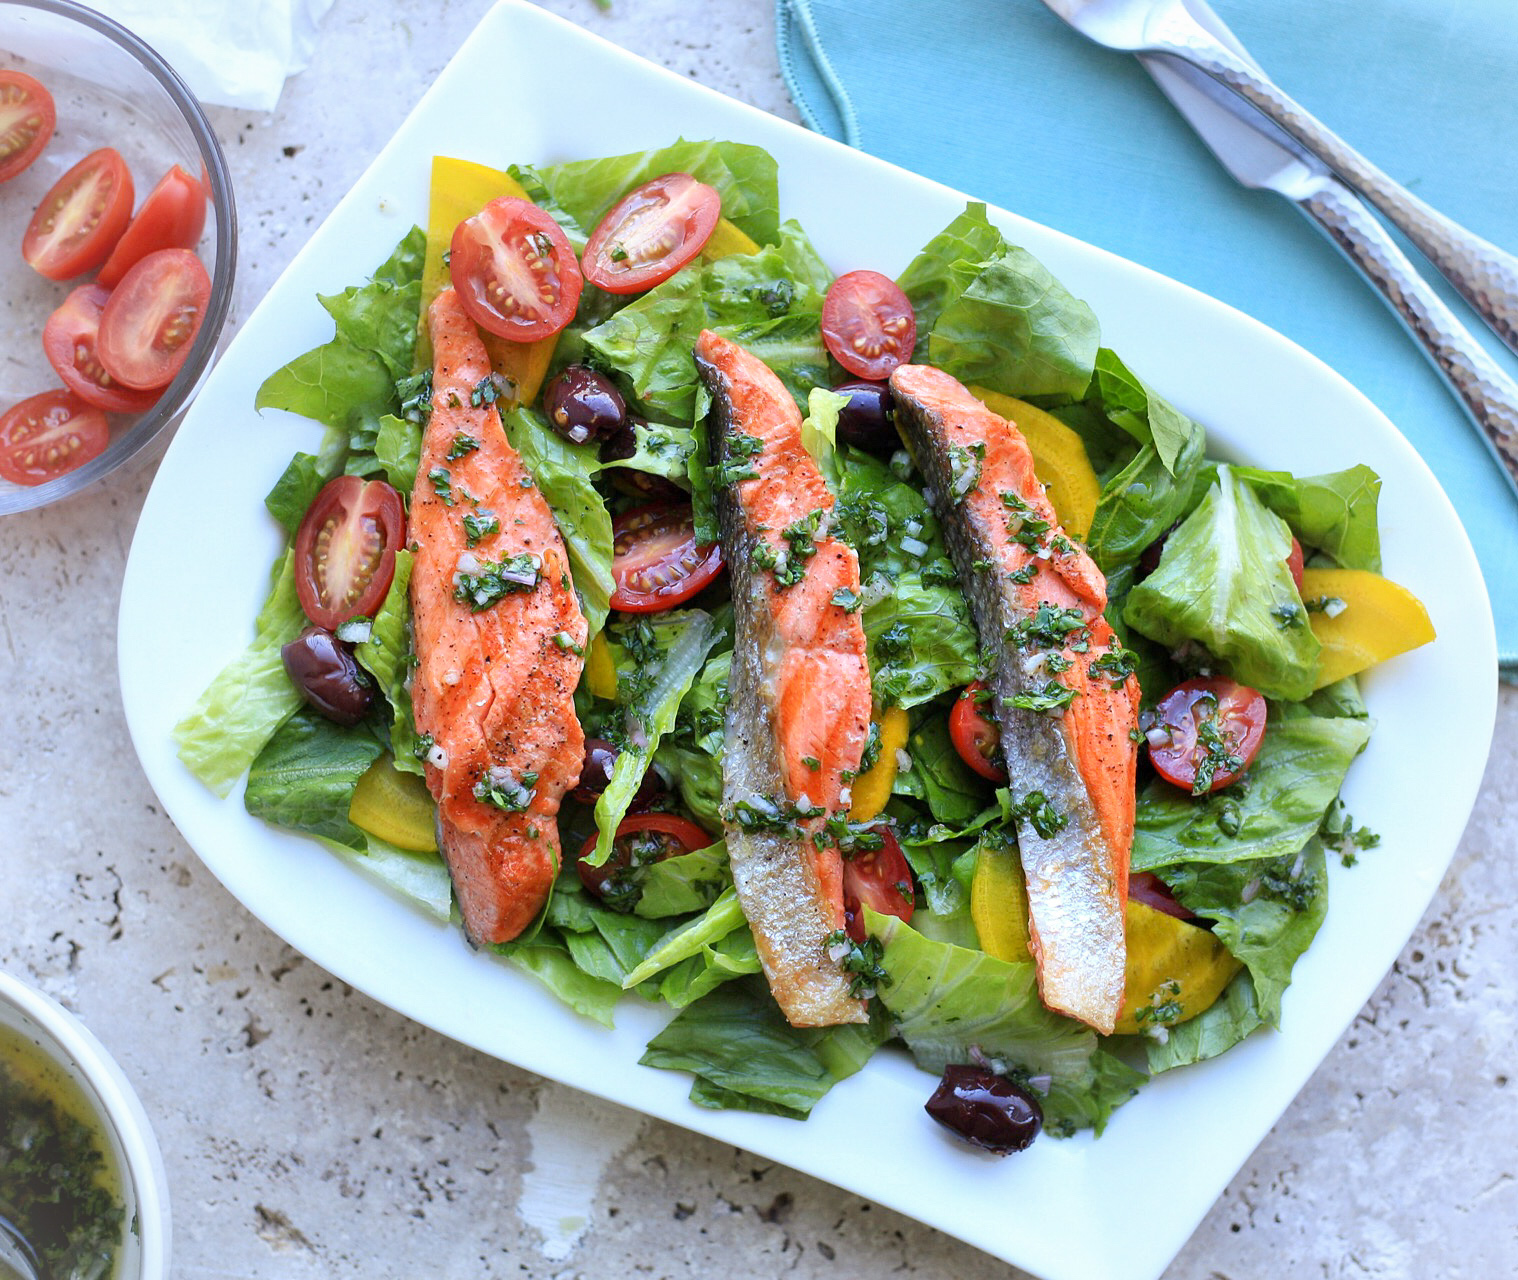 Simple grilled salmon salad with romaine and yellow beets